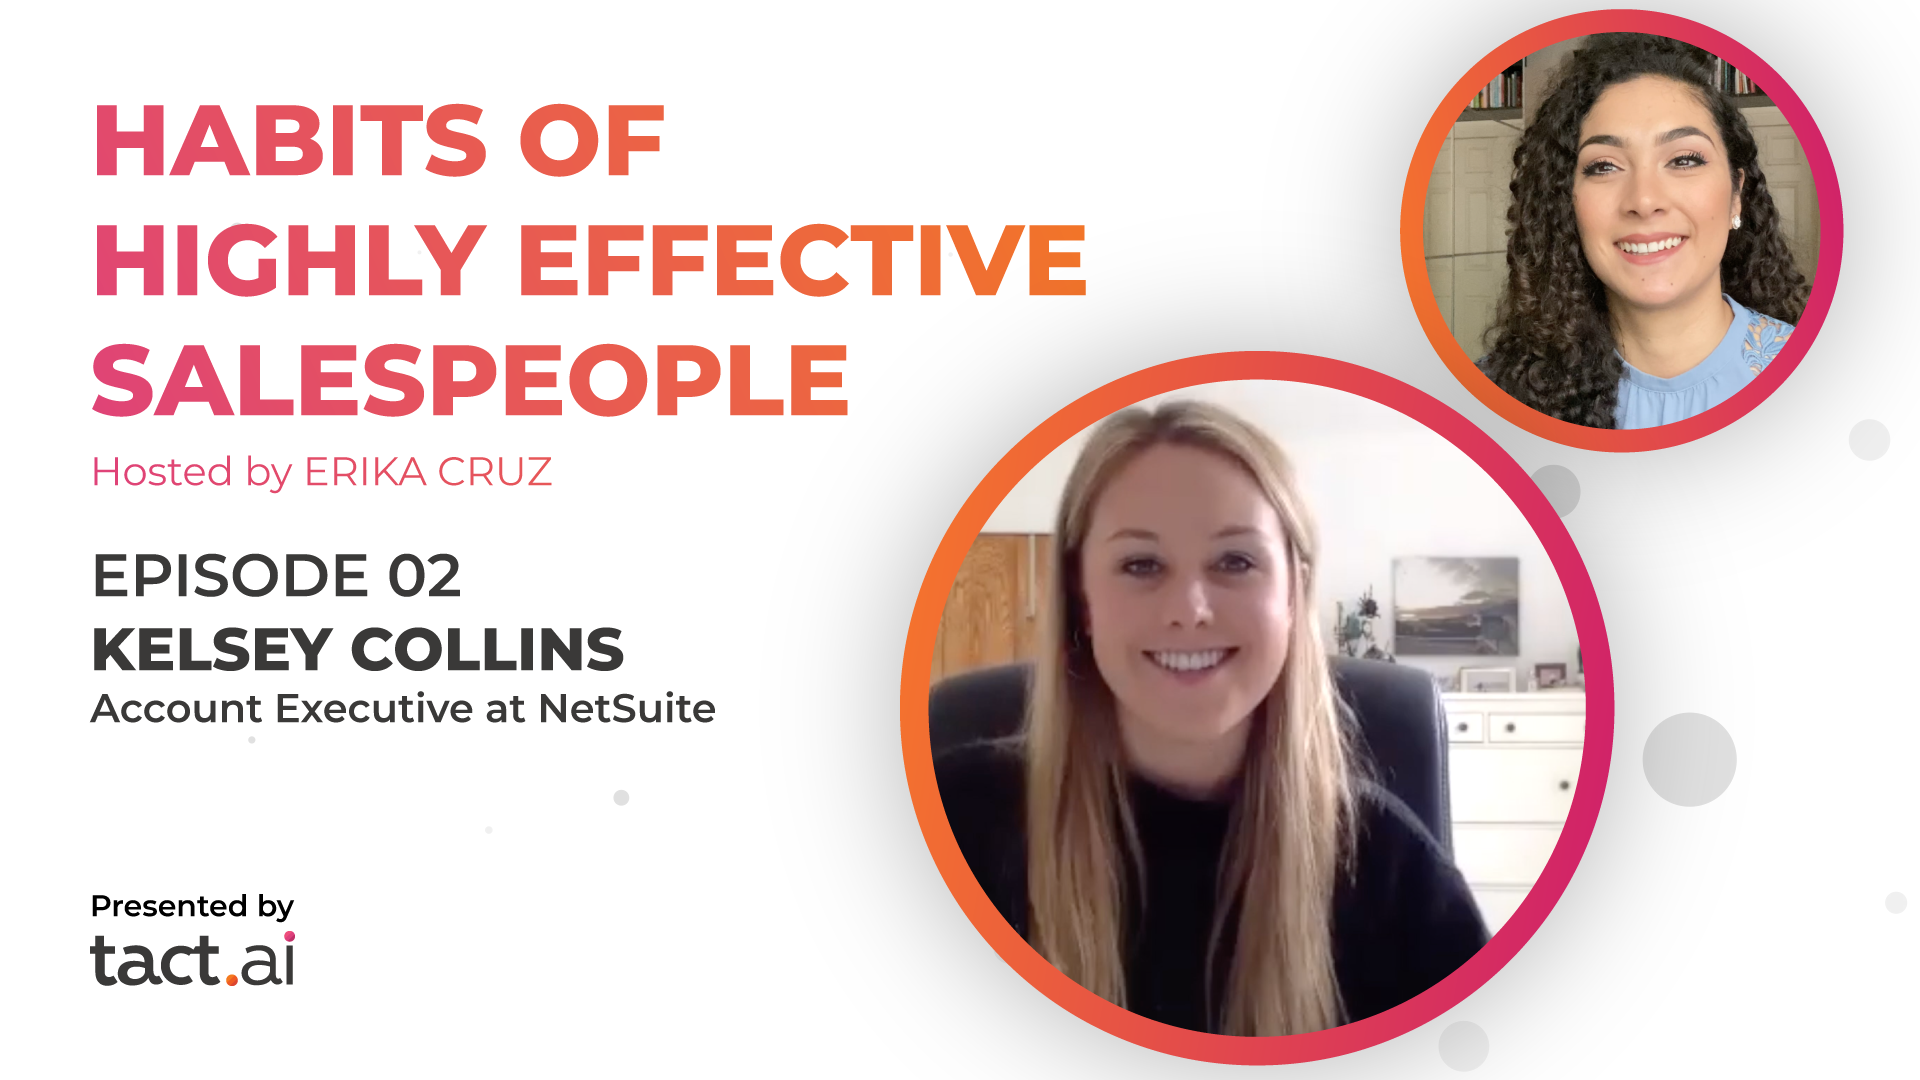 Habits of Highly Effective Salespeople - Kelsey Collins - Episode 3